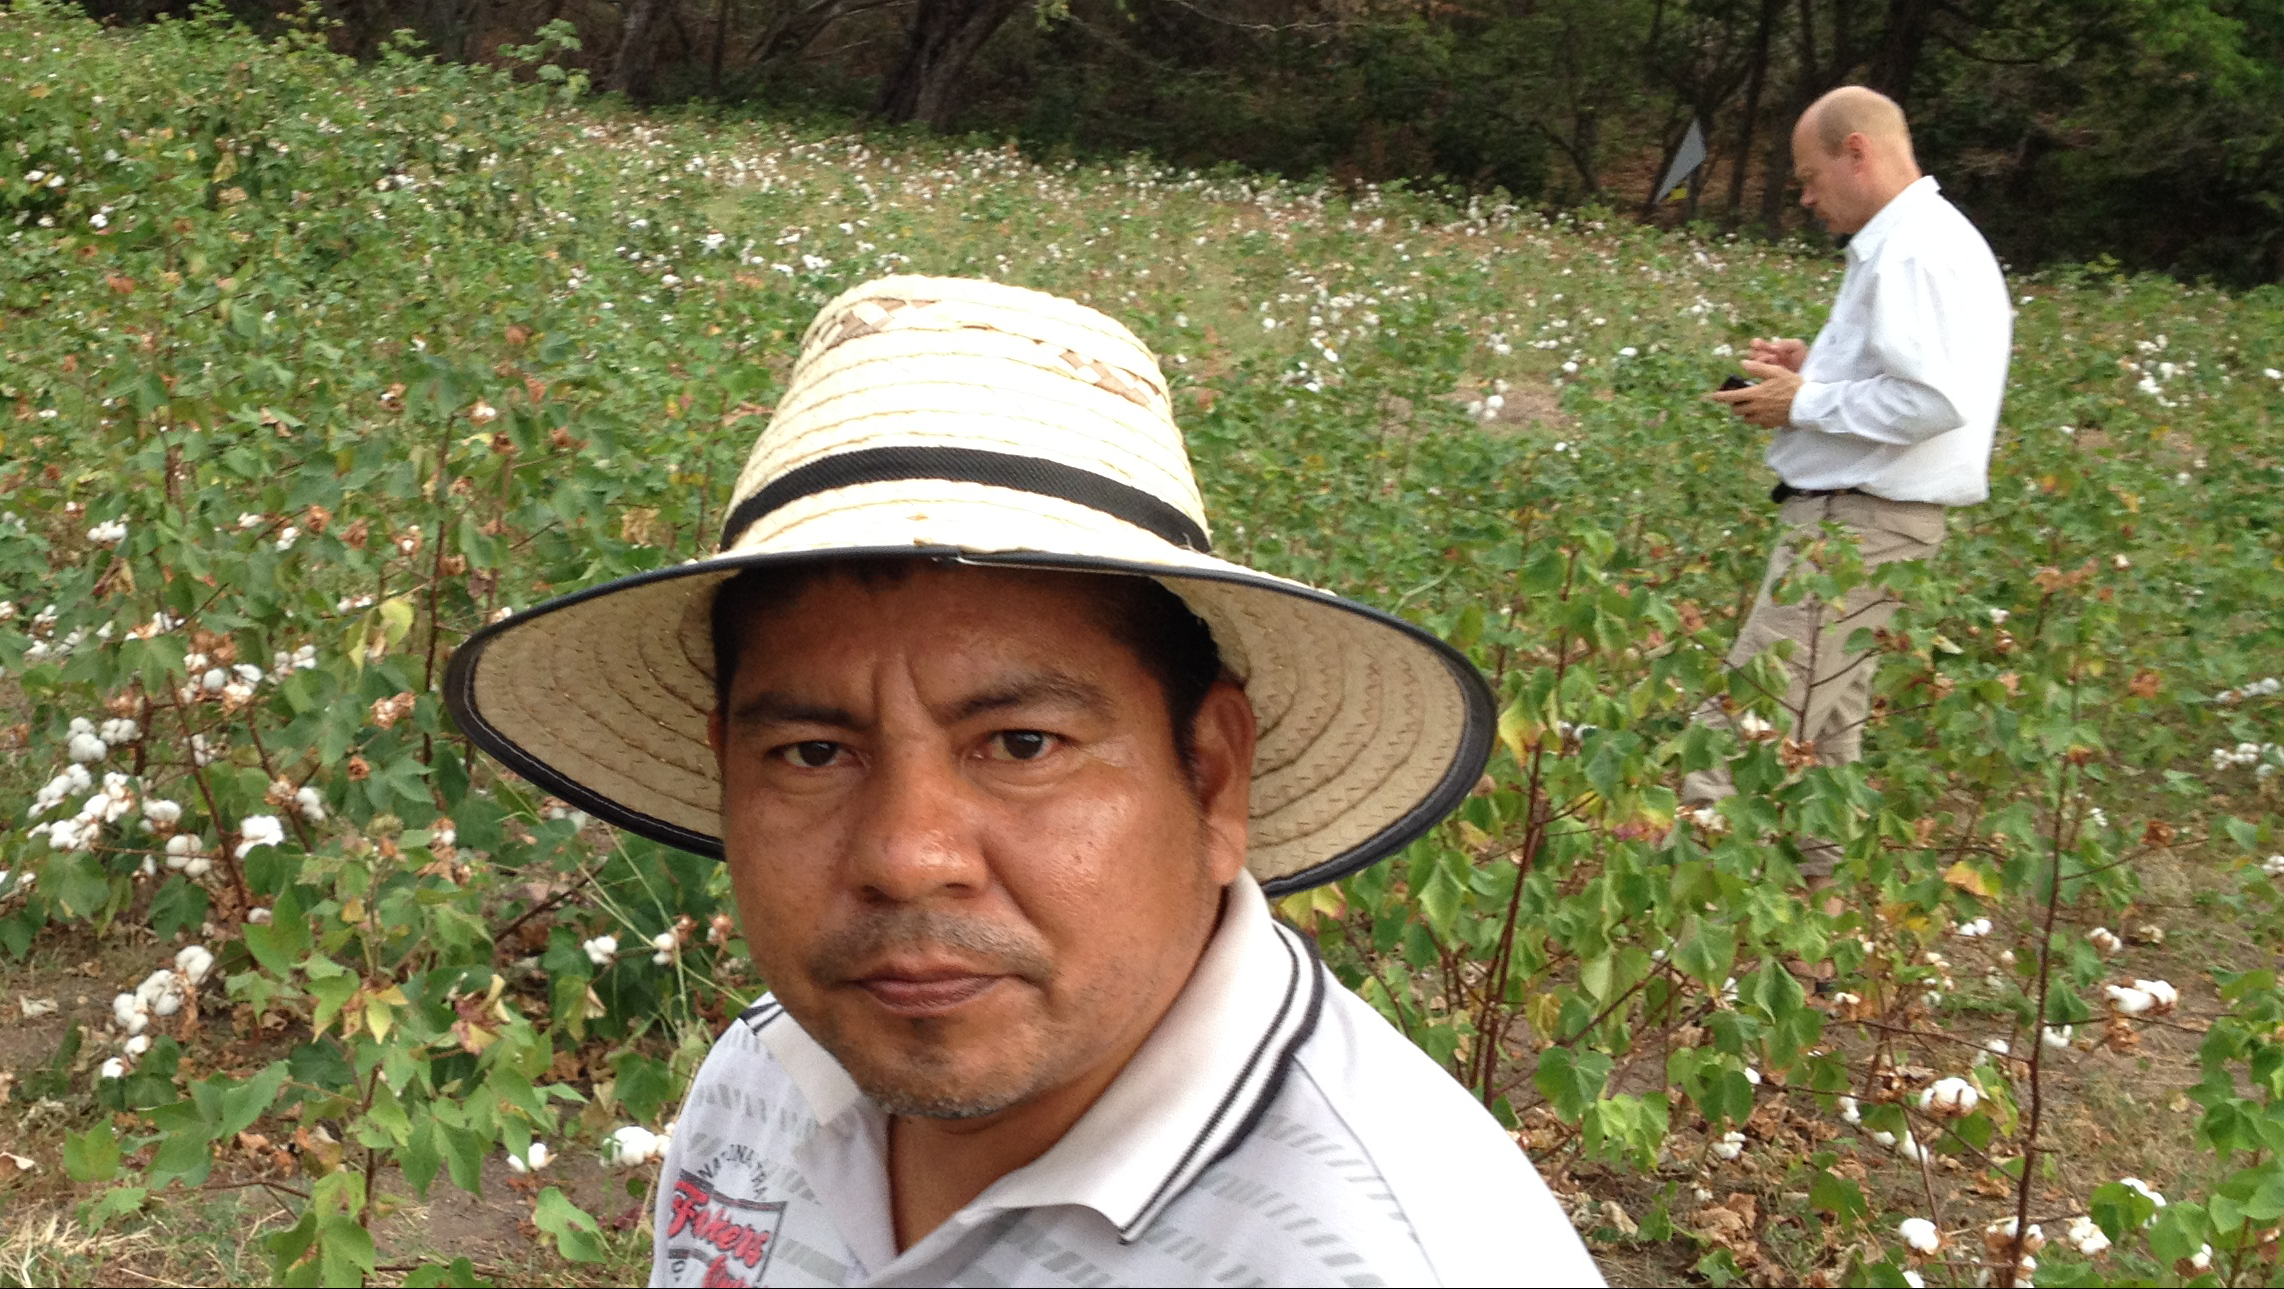 Inspecting organic cotton field, Natagaima, Colombia 2015